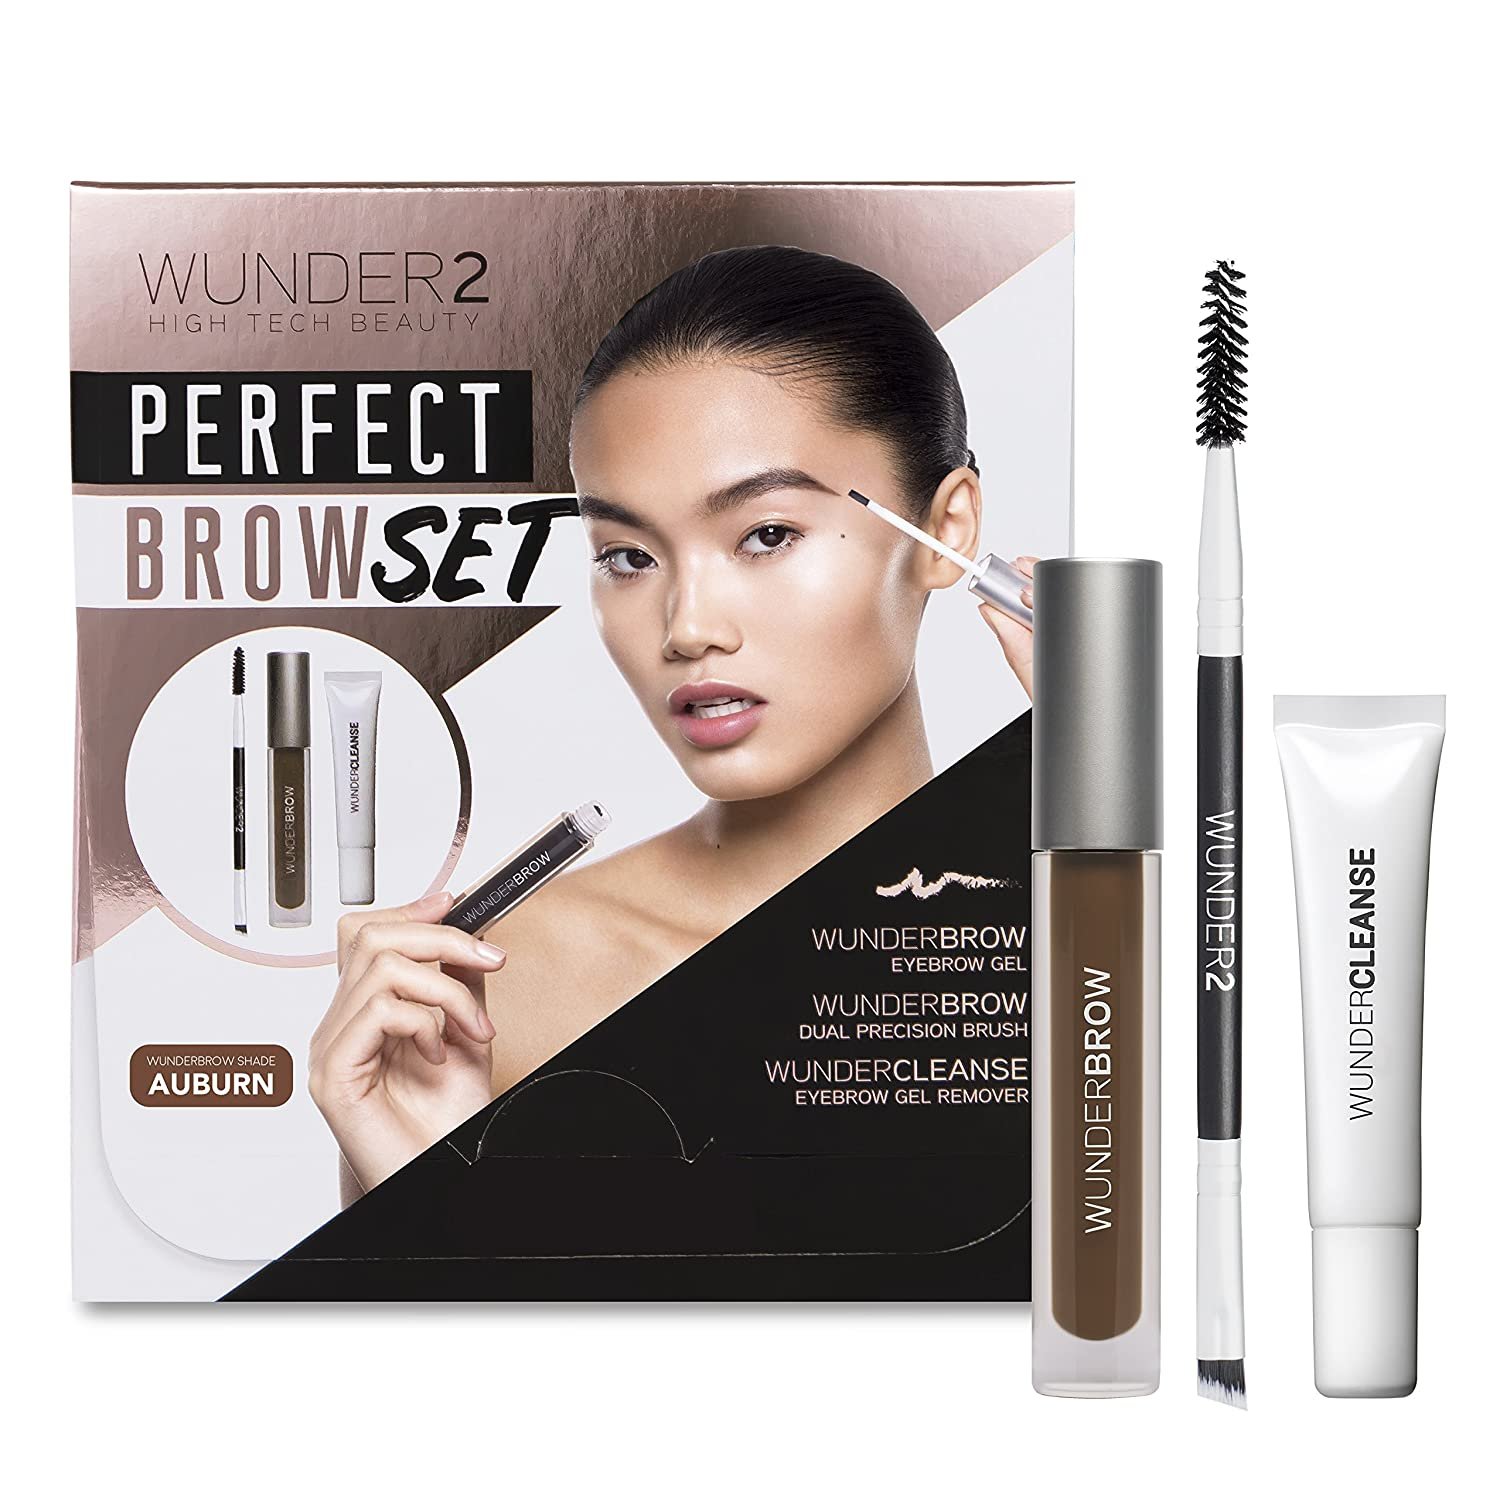 WUNDER2 WUNDER2 Perfect Brow set- Wunderbrow impermeabile, gel per sopracciglia Wundercleanse struccante & Dual Precision Brow Brush – Auburn Colour x KF Beauty BROW_SET_AU